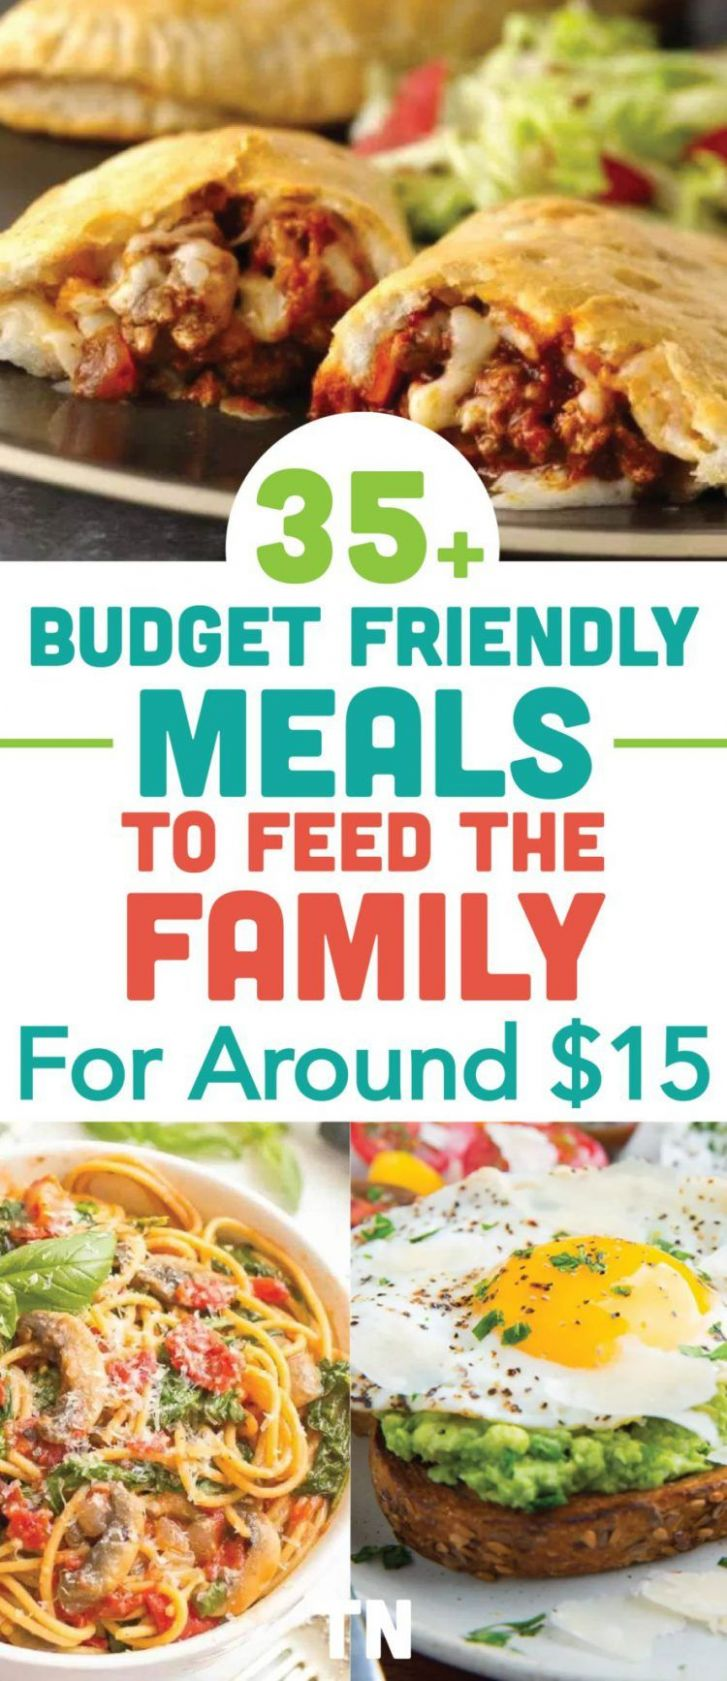 Cheap Dinner Ideas To Stay Under Your Meal Budget - Food Recipes Cheap